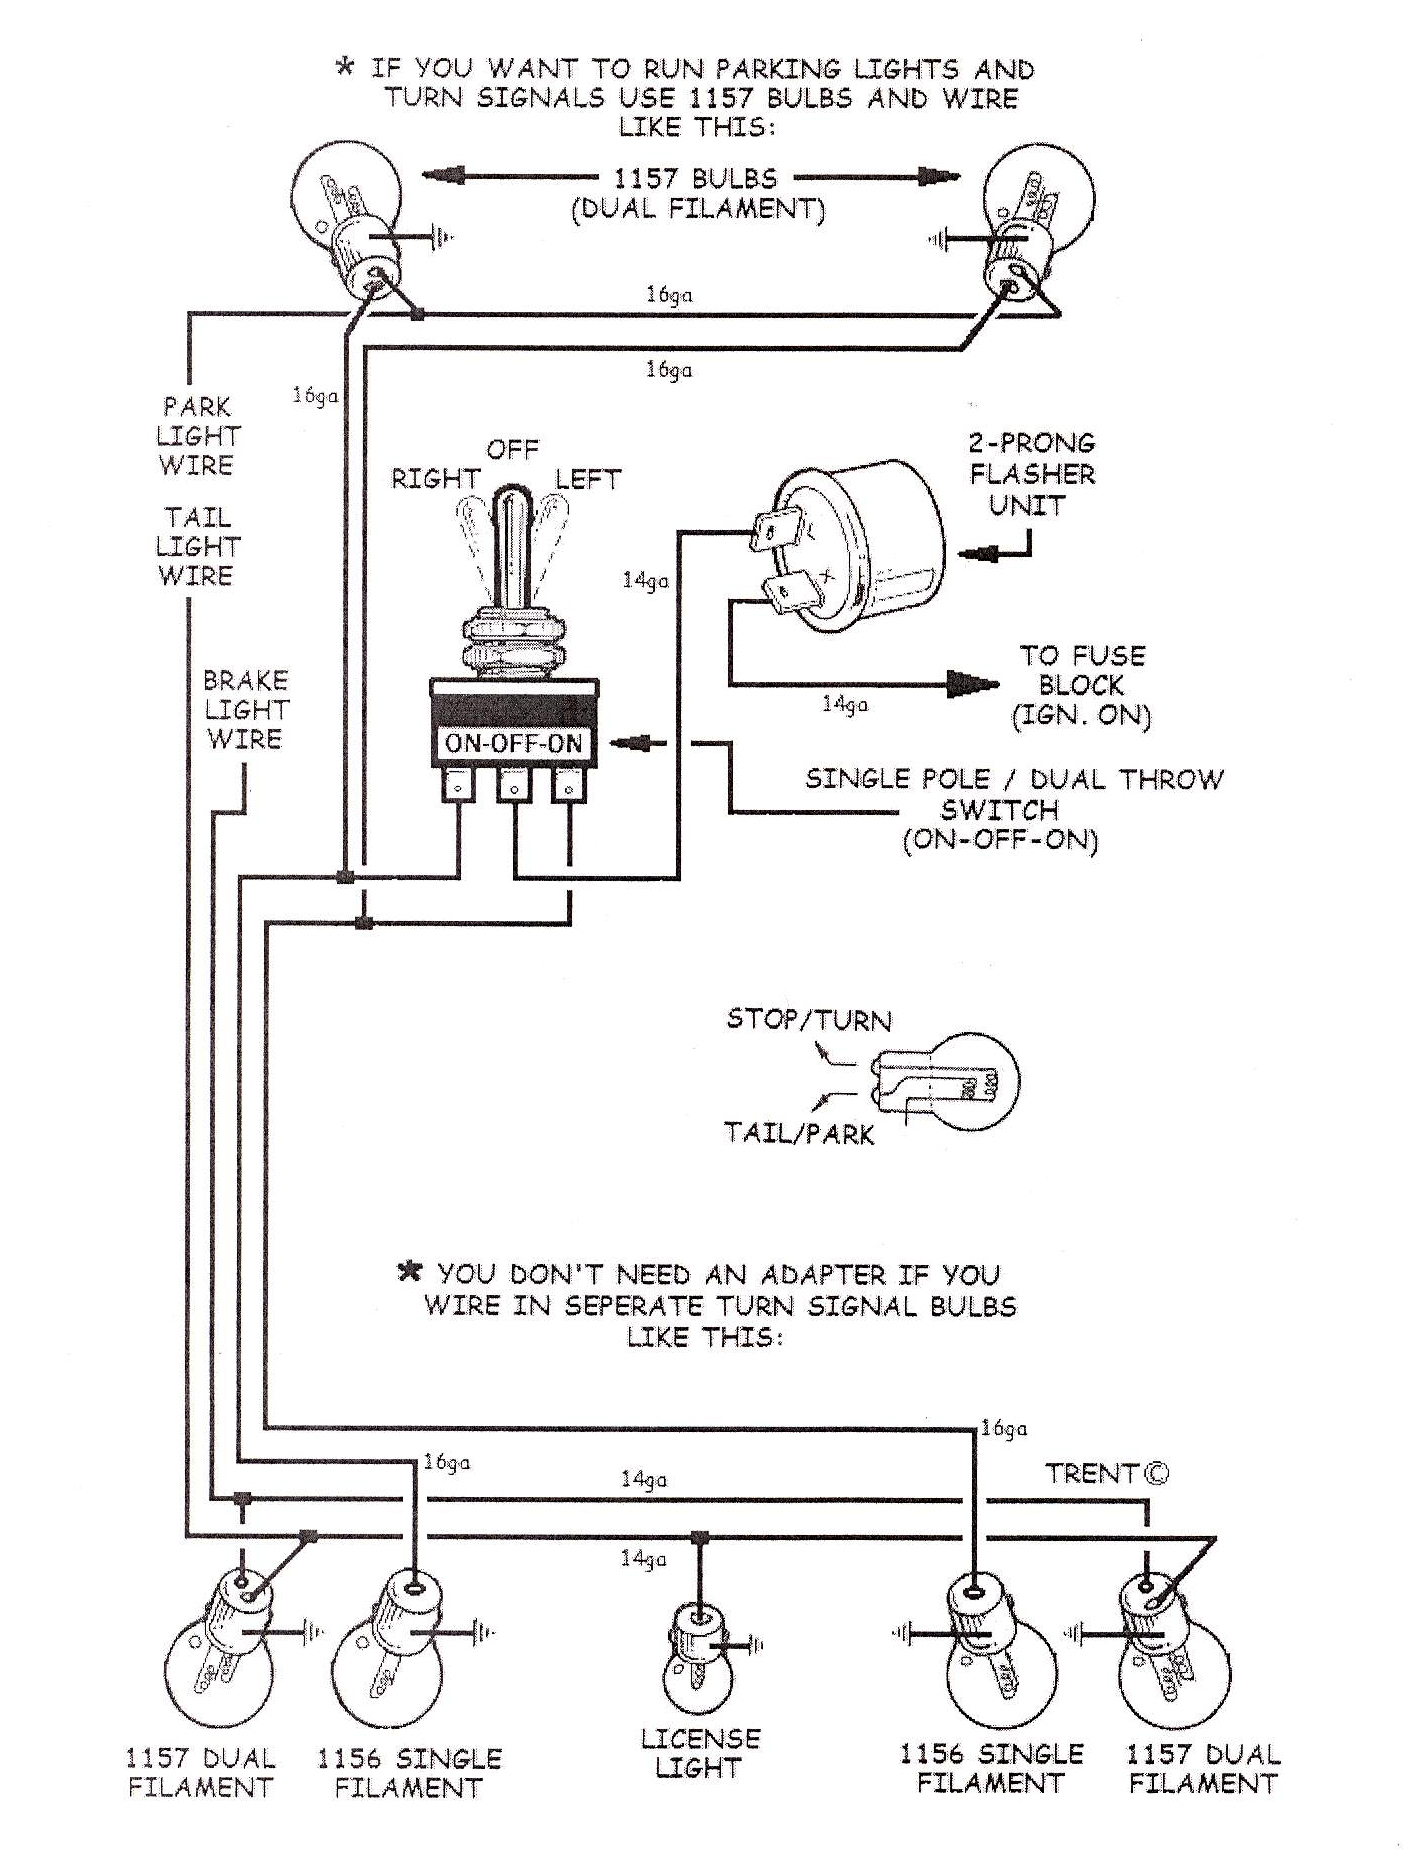 turnsignalwiringdiagram tech tips 1970 gm steering column wiring diagram at mr168.co